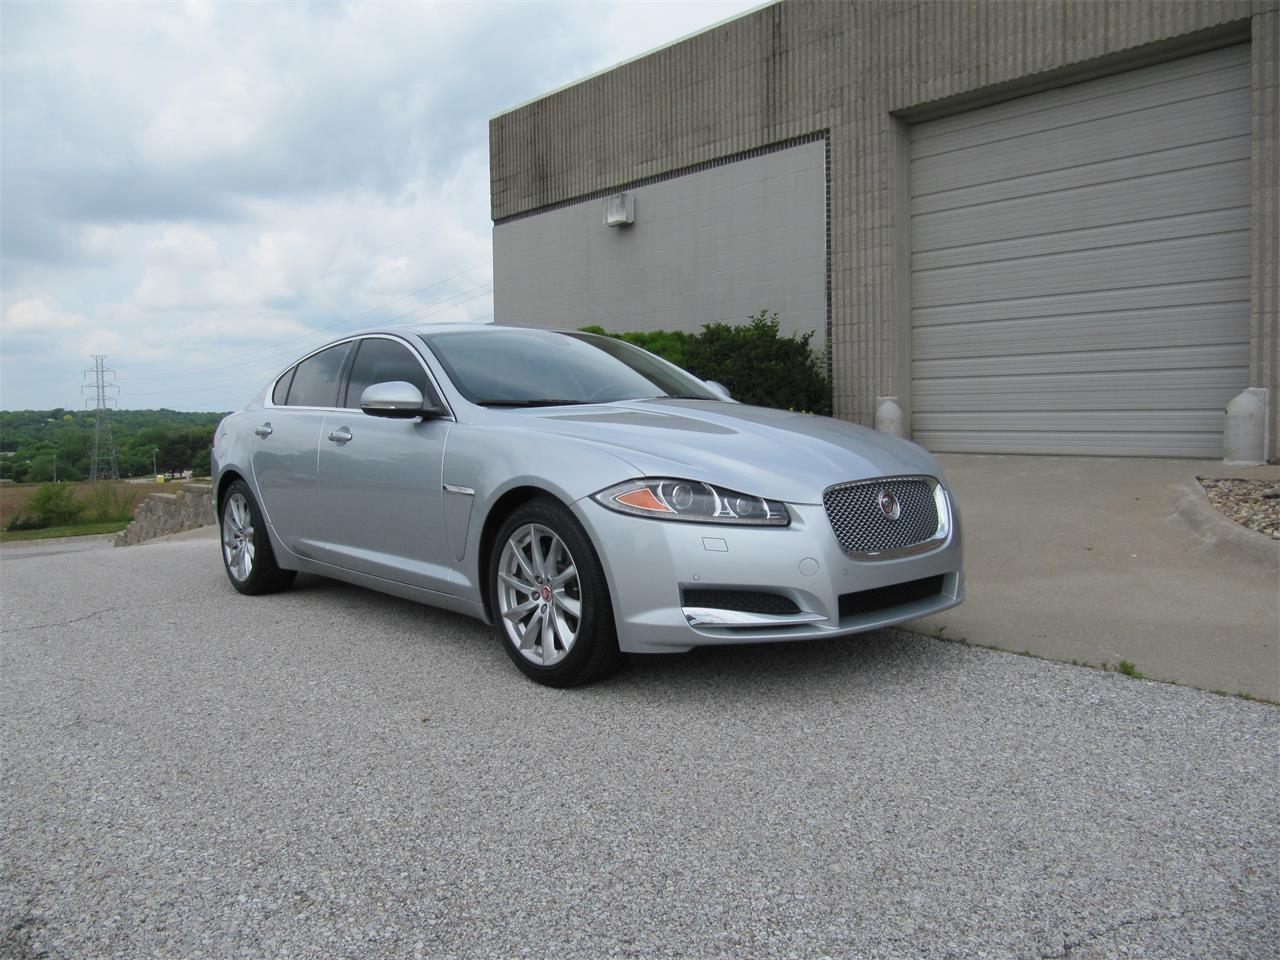 Large Picture of '15 Jaguar XF located in Omaha Nebraska - $23,900.00 Offered by Classic Auto Sales - QD33